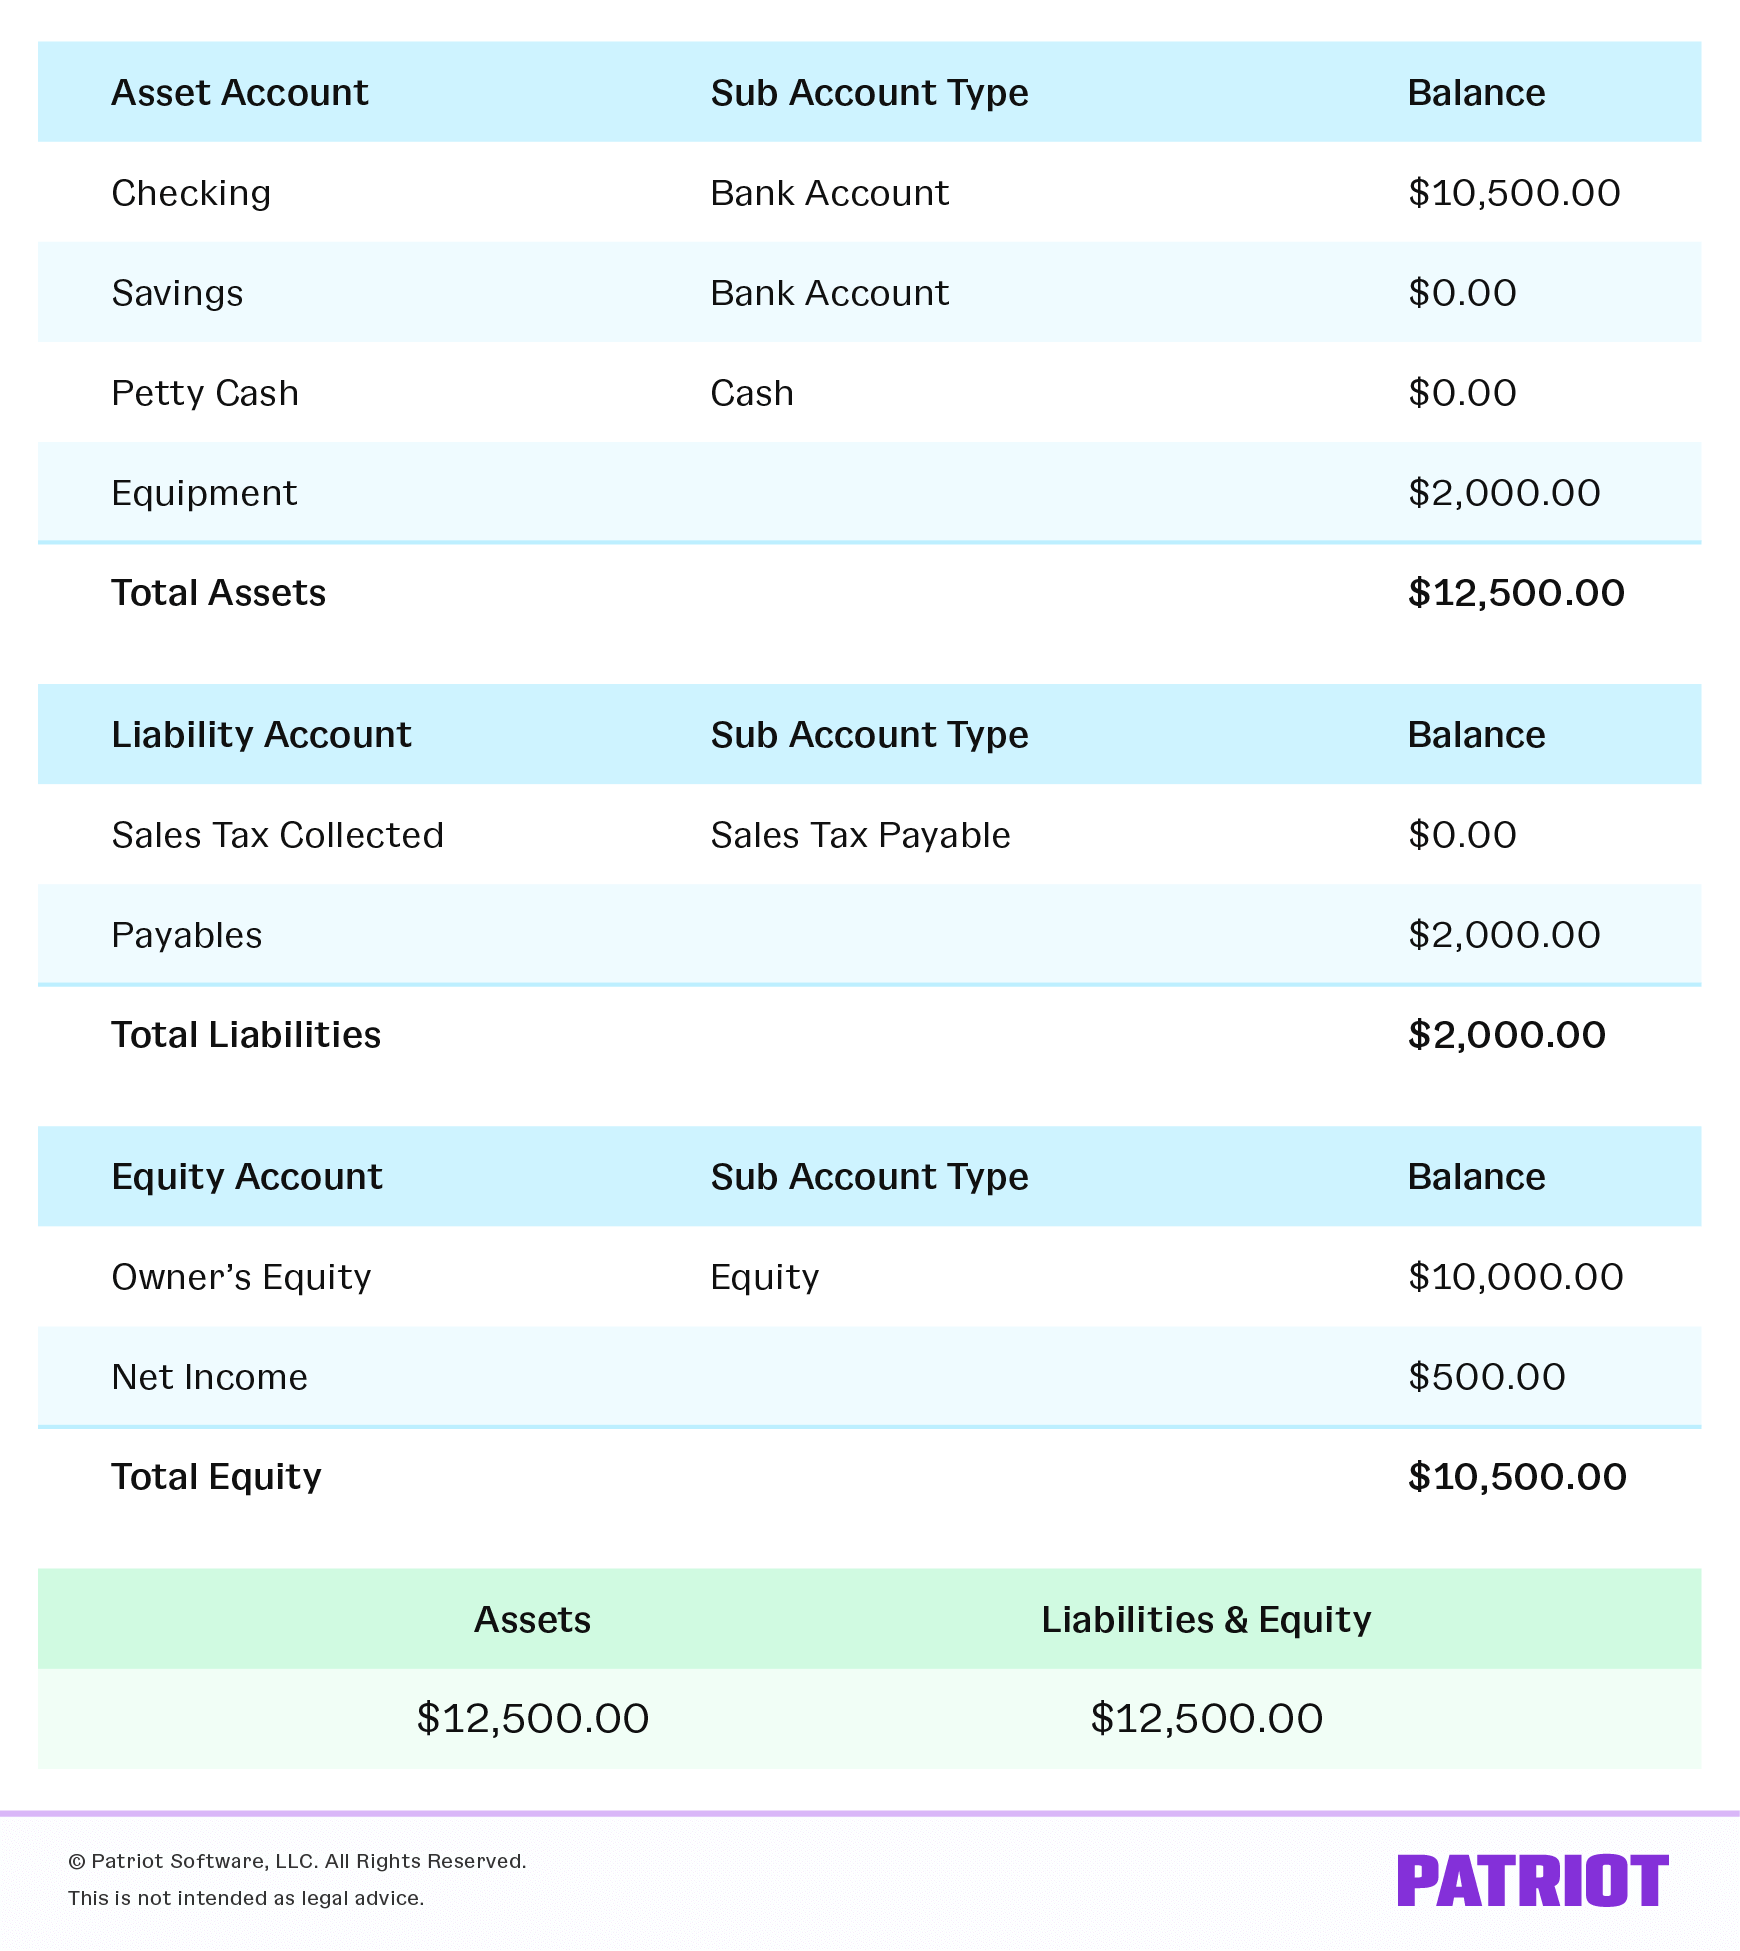 Sample balance sheet showing assets equaling liabilities and equity.